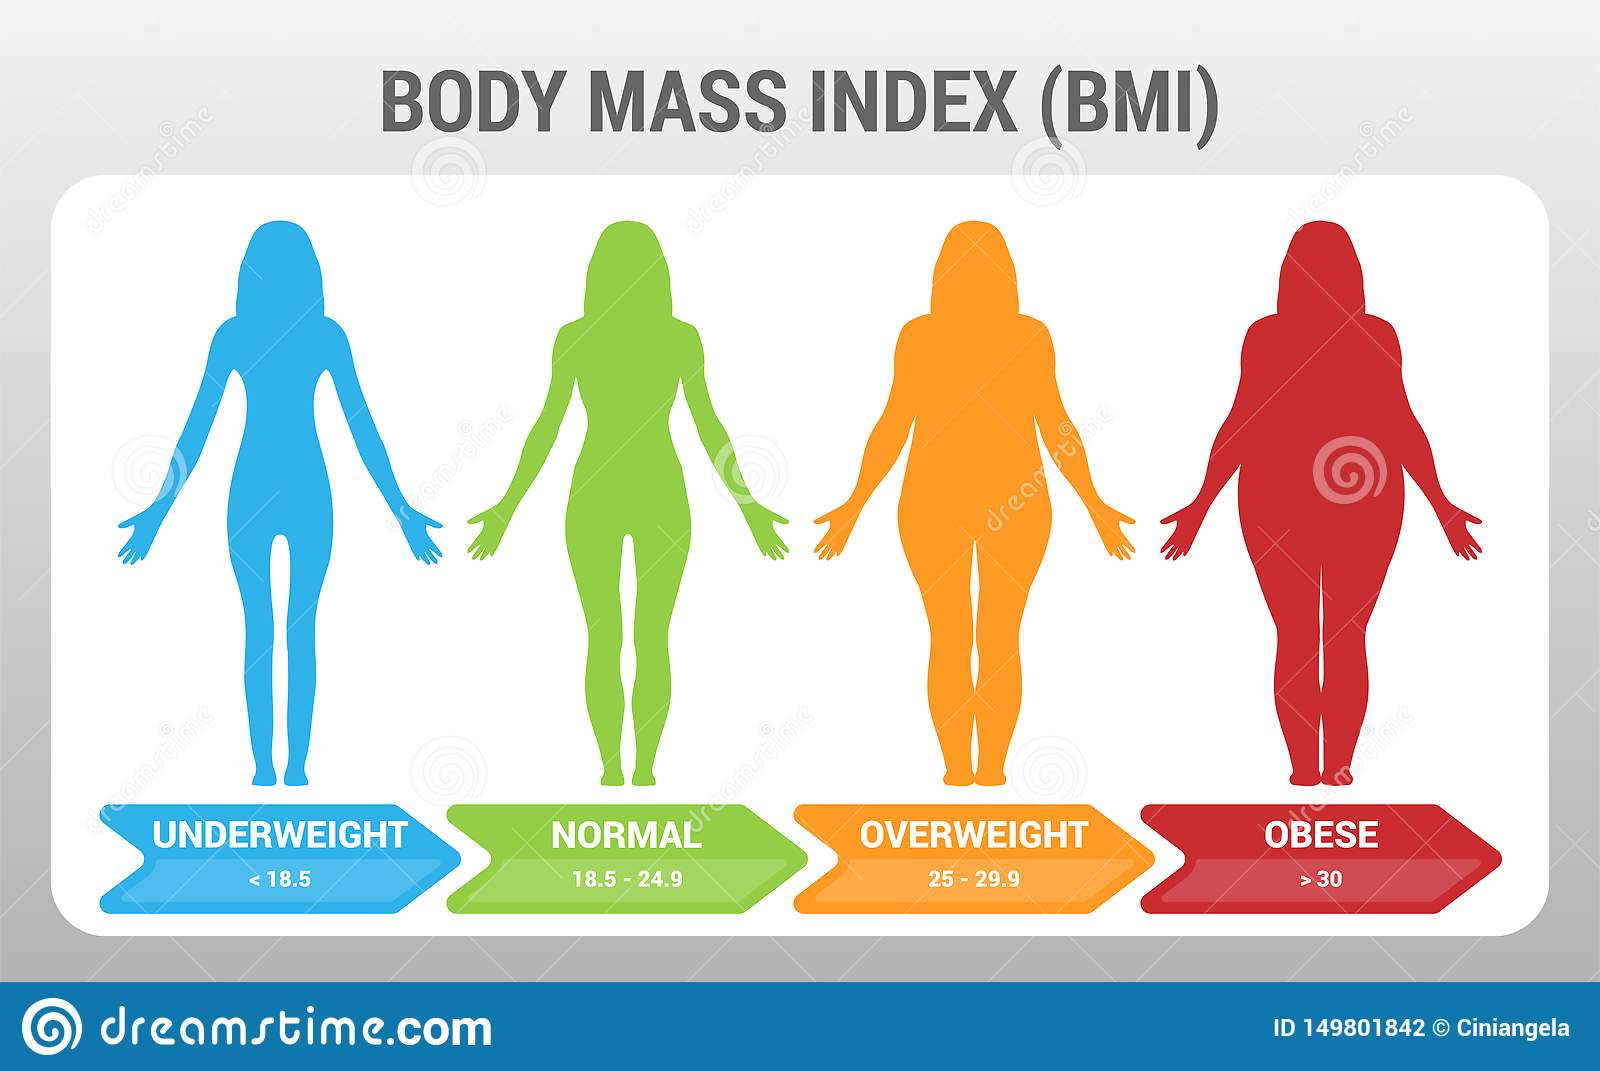 Bmi Body Mass Index Vector Illustration With Woman